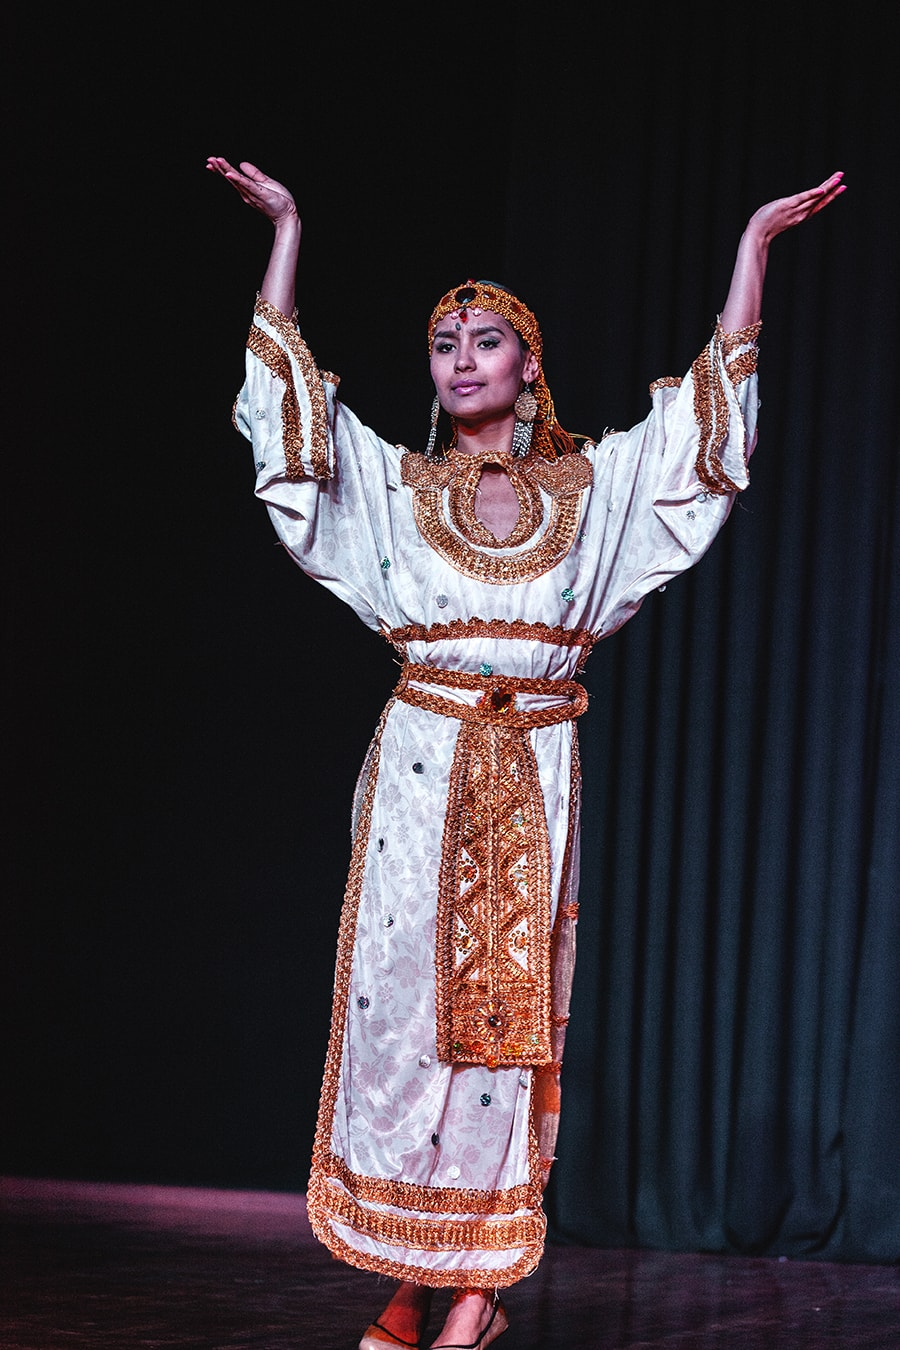 An ethnic dance performer in Samarkand, Uzbekistan.